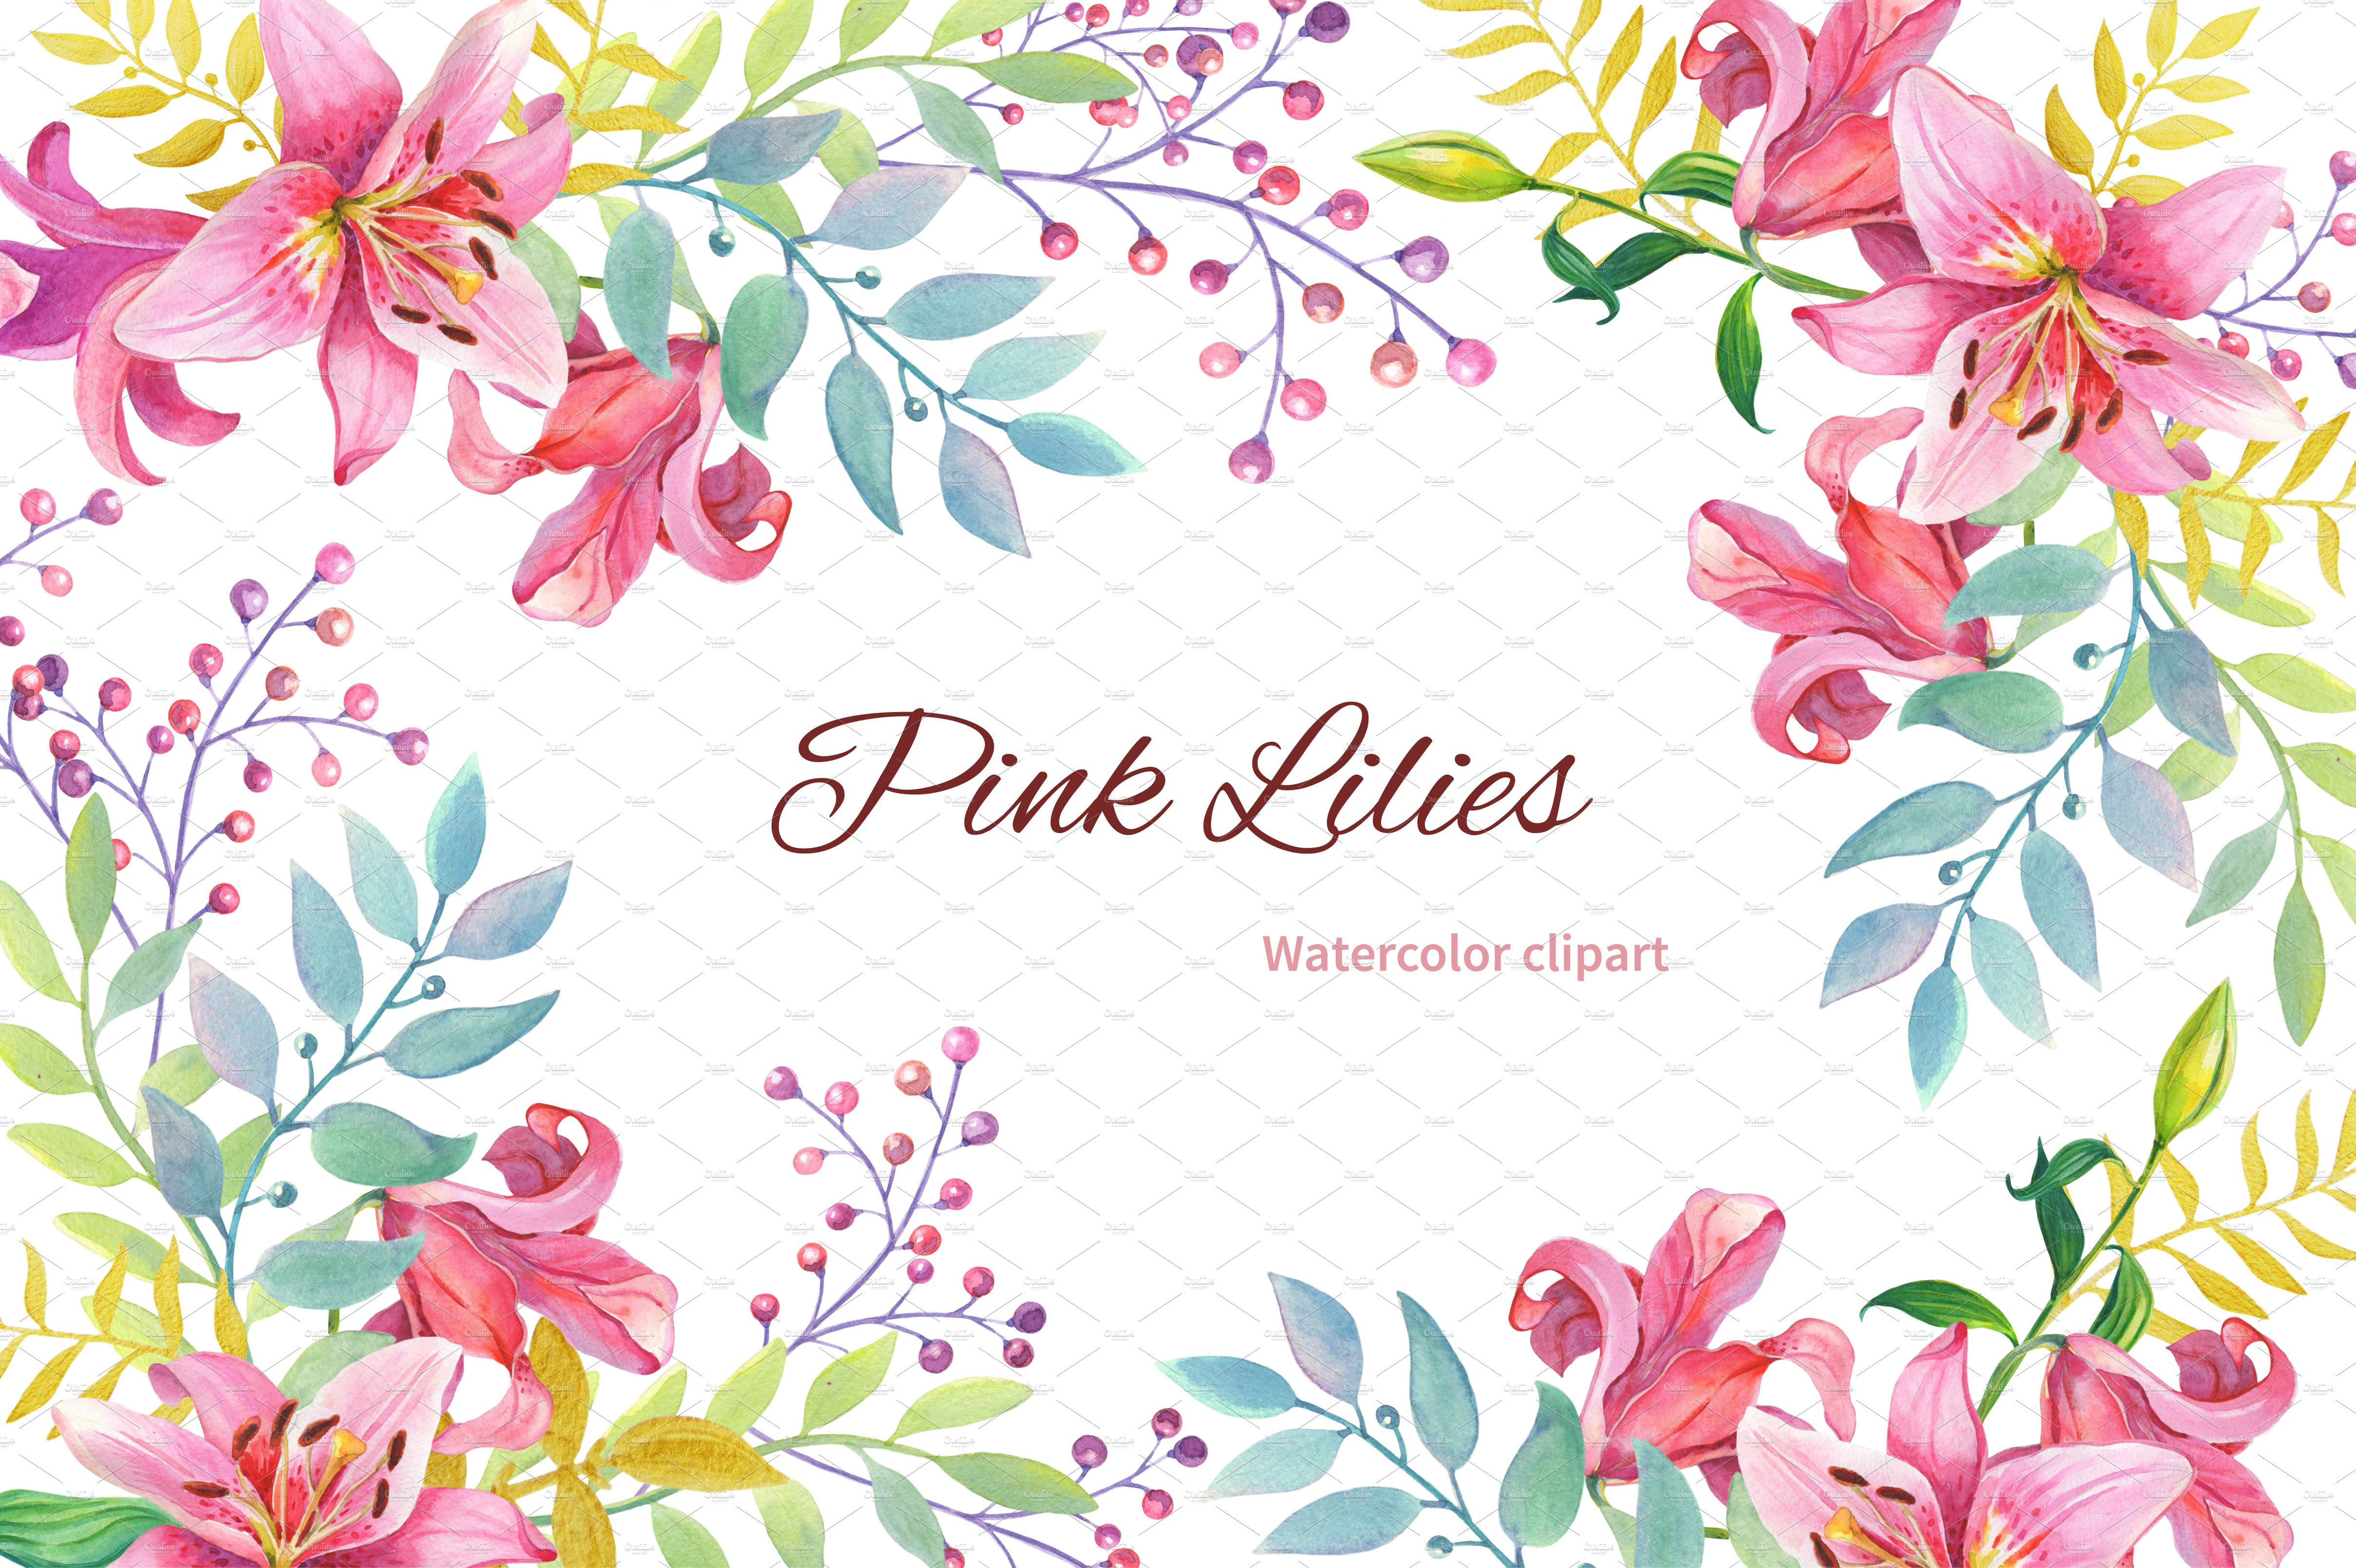 Pink Lilies.Watercolor clipart. ~ Illustrations ~ Creative ...